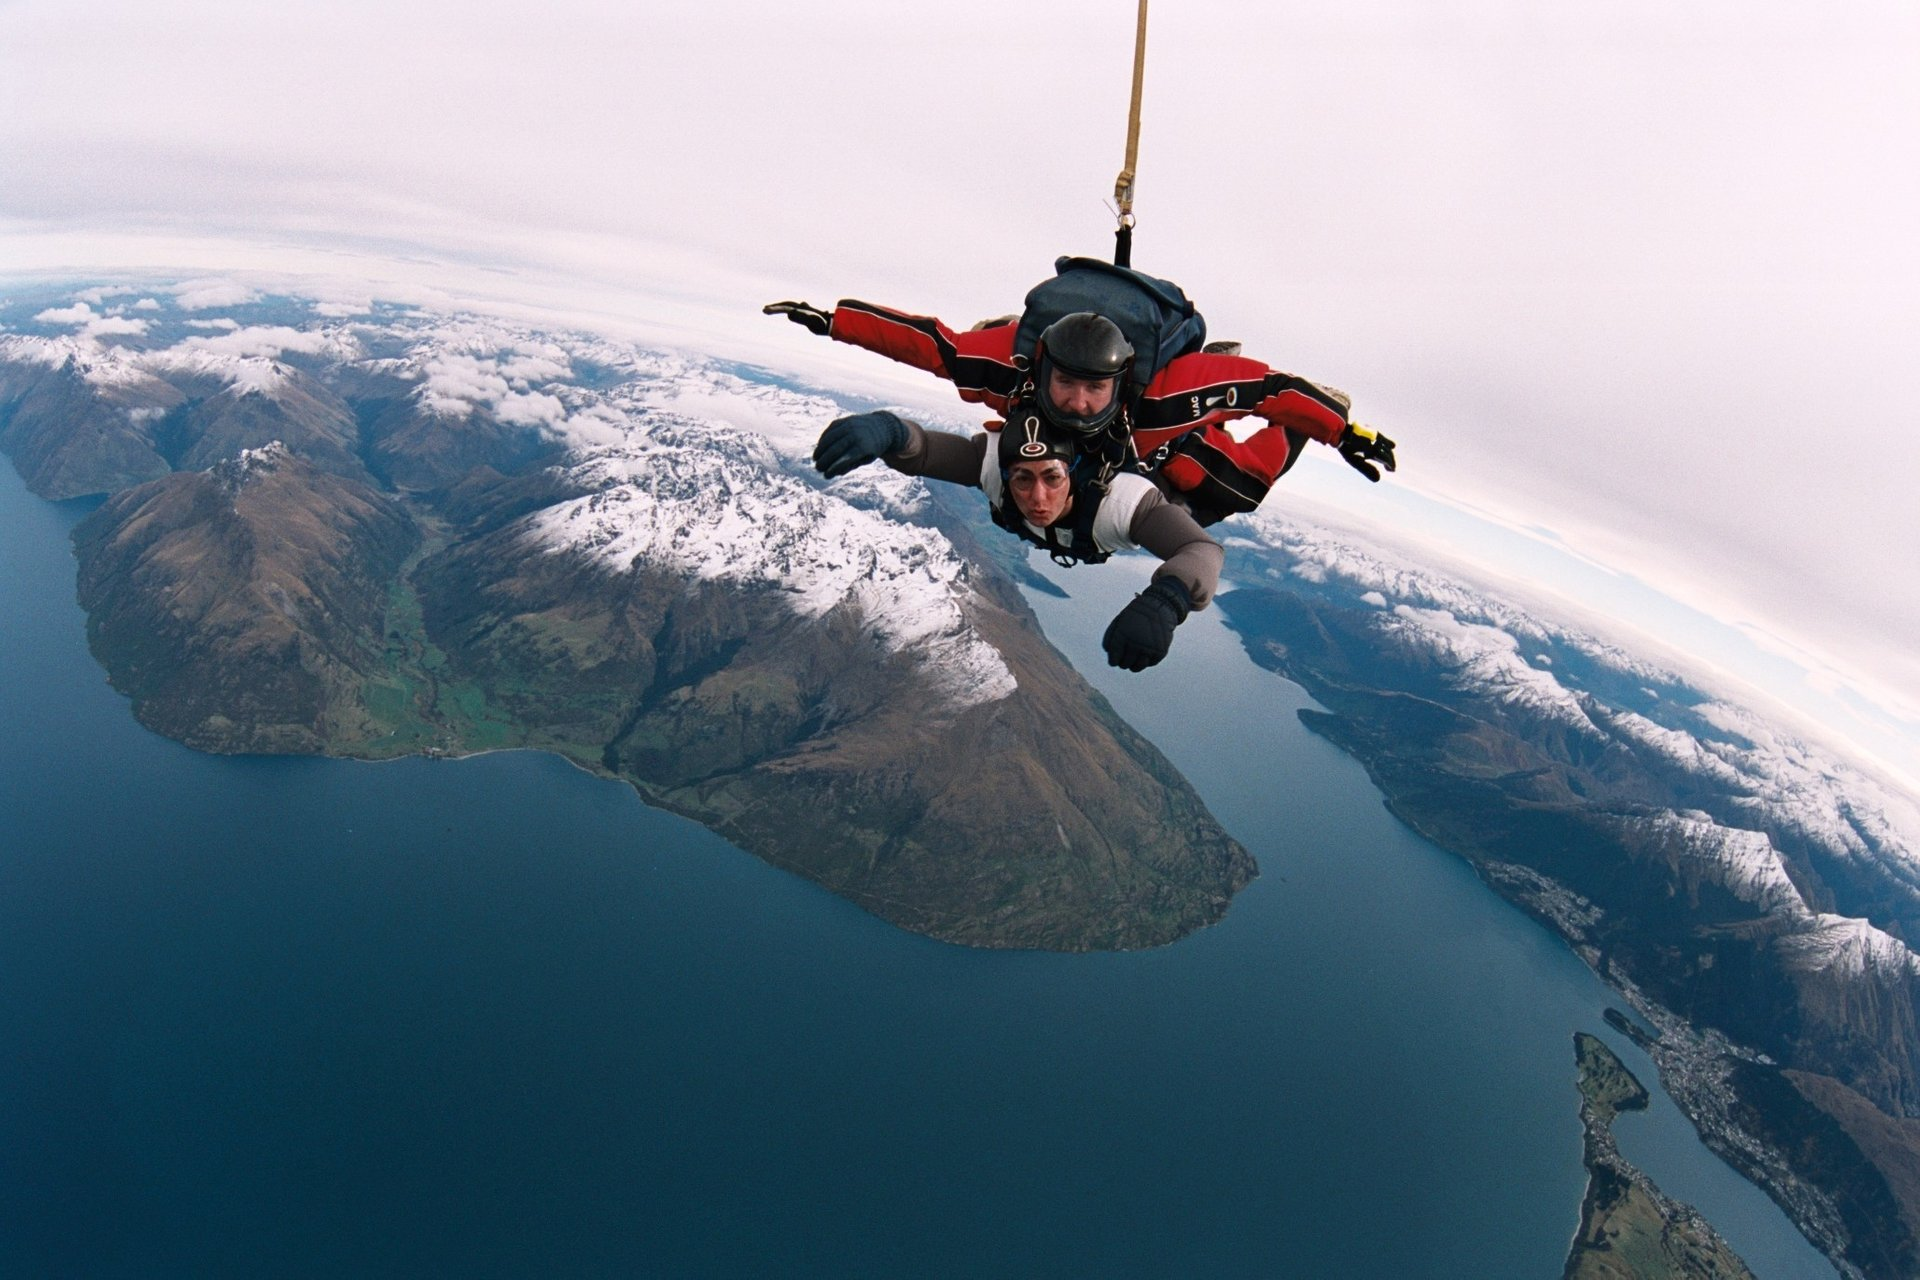 Skydiving in Queenstown in New Zealand 2020 - Best Time